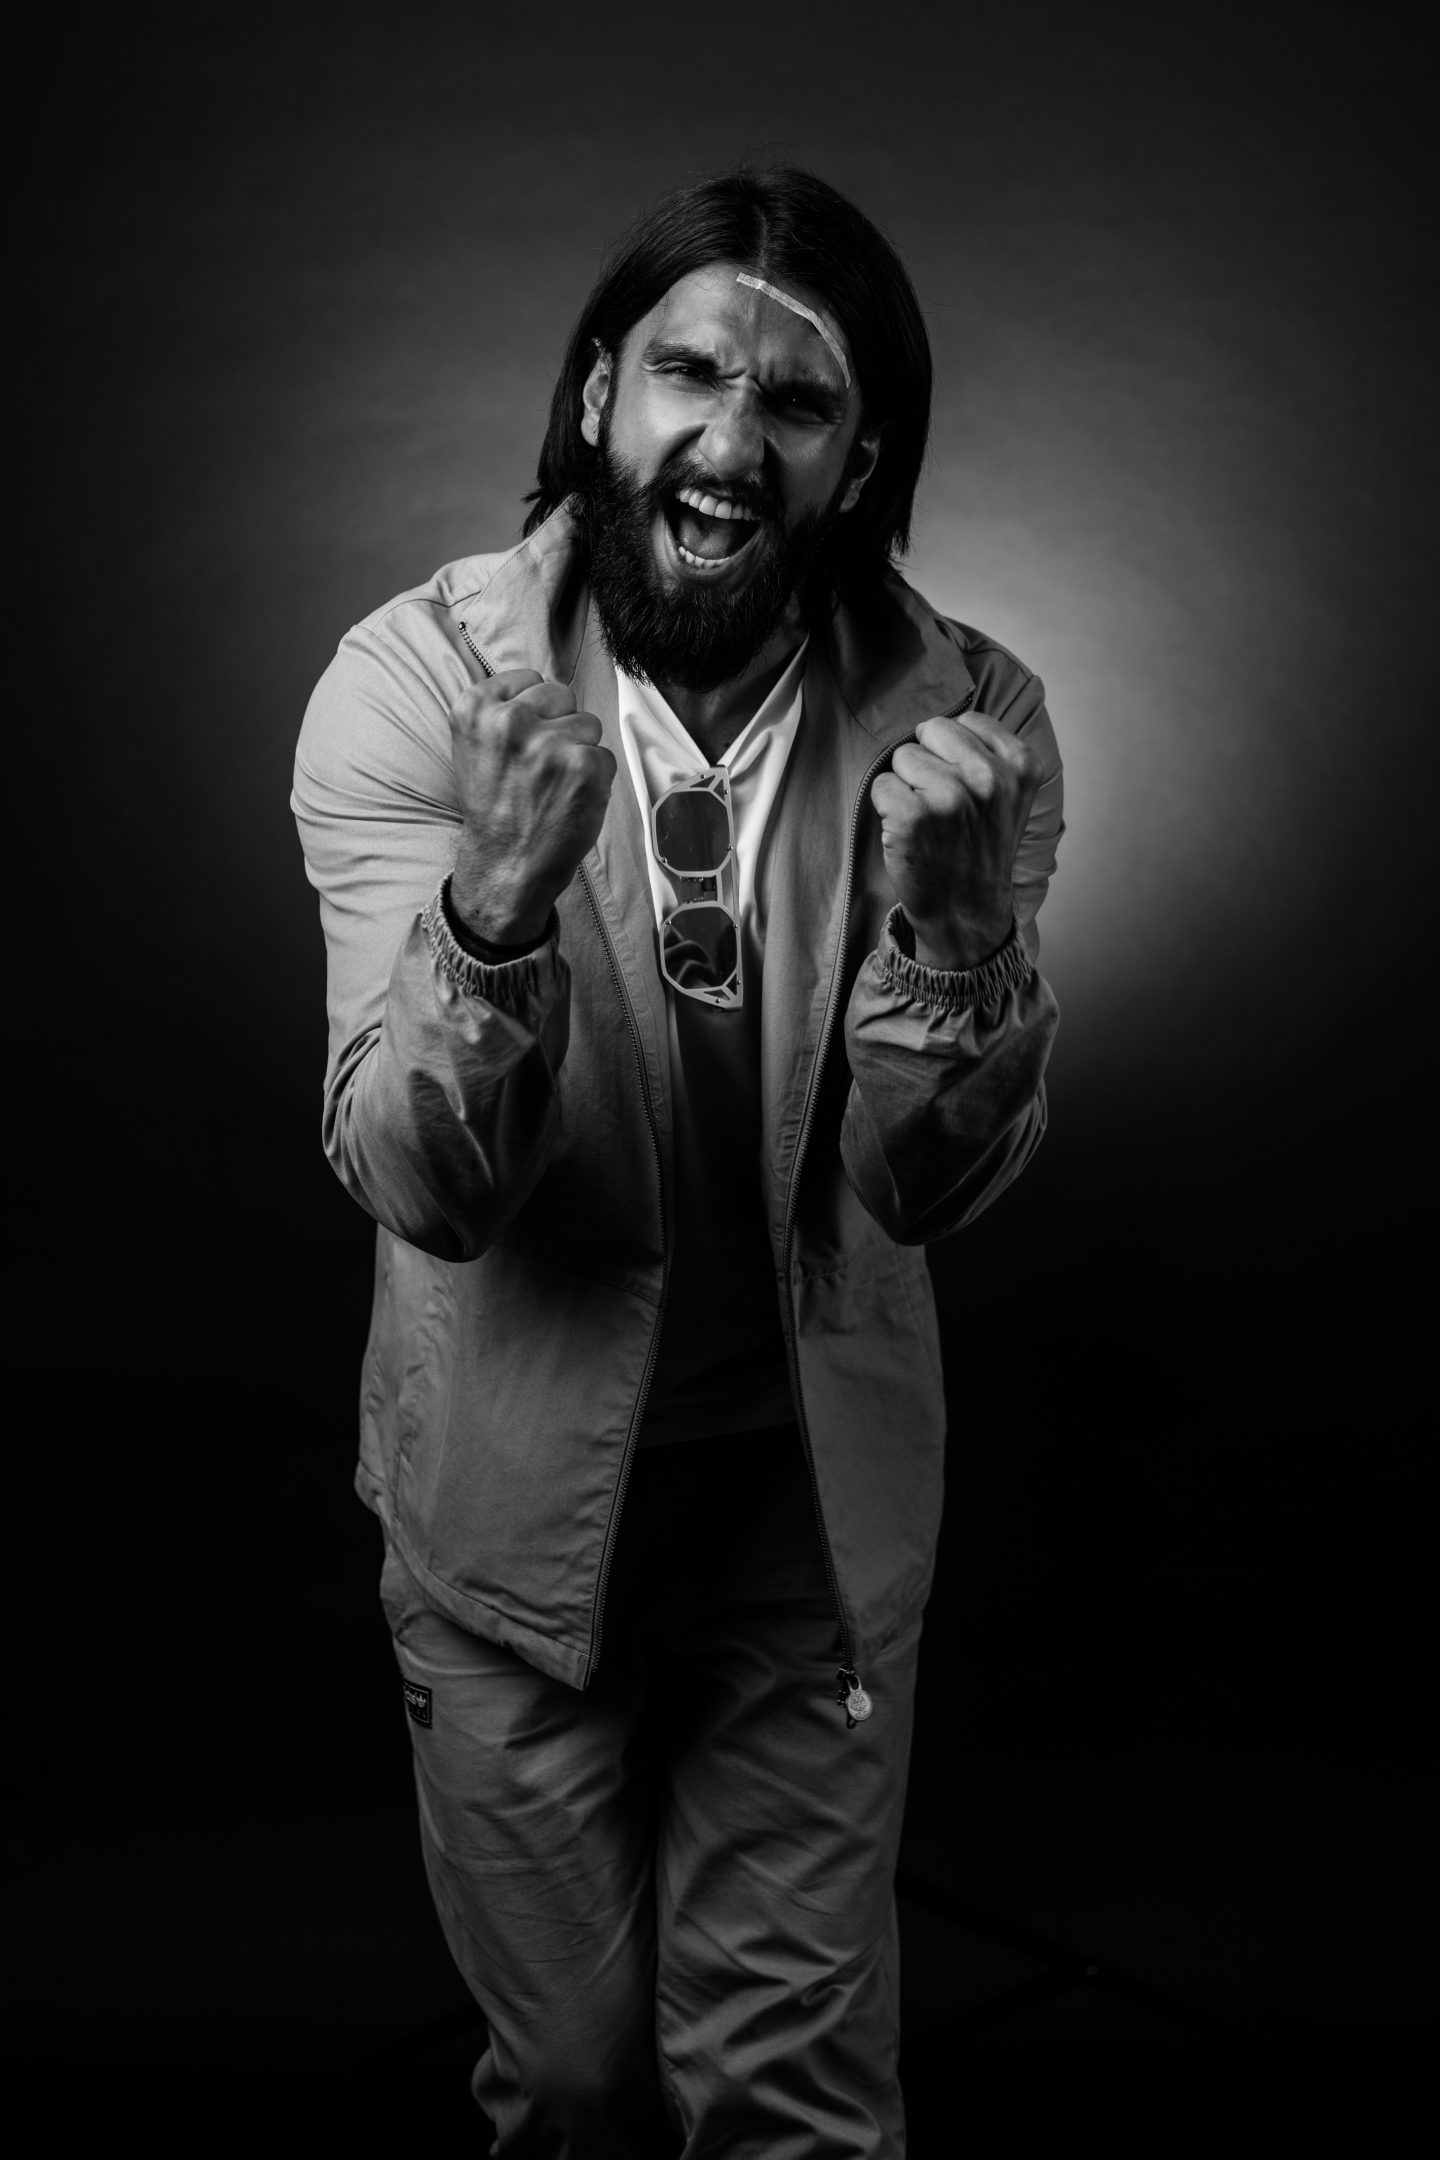 Bollywood actor Ranveer Singh cheering black and white shot_adidas_Interview_GamePlanA, success, career